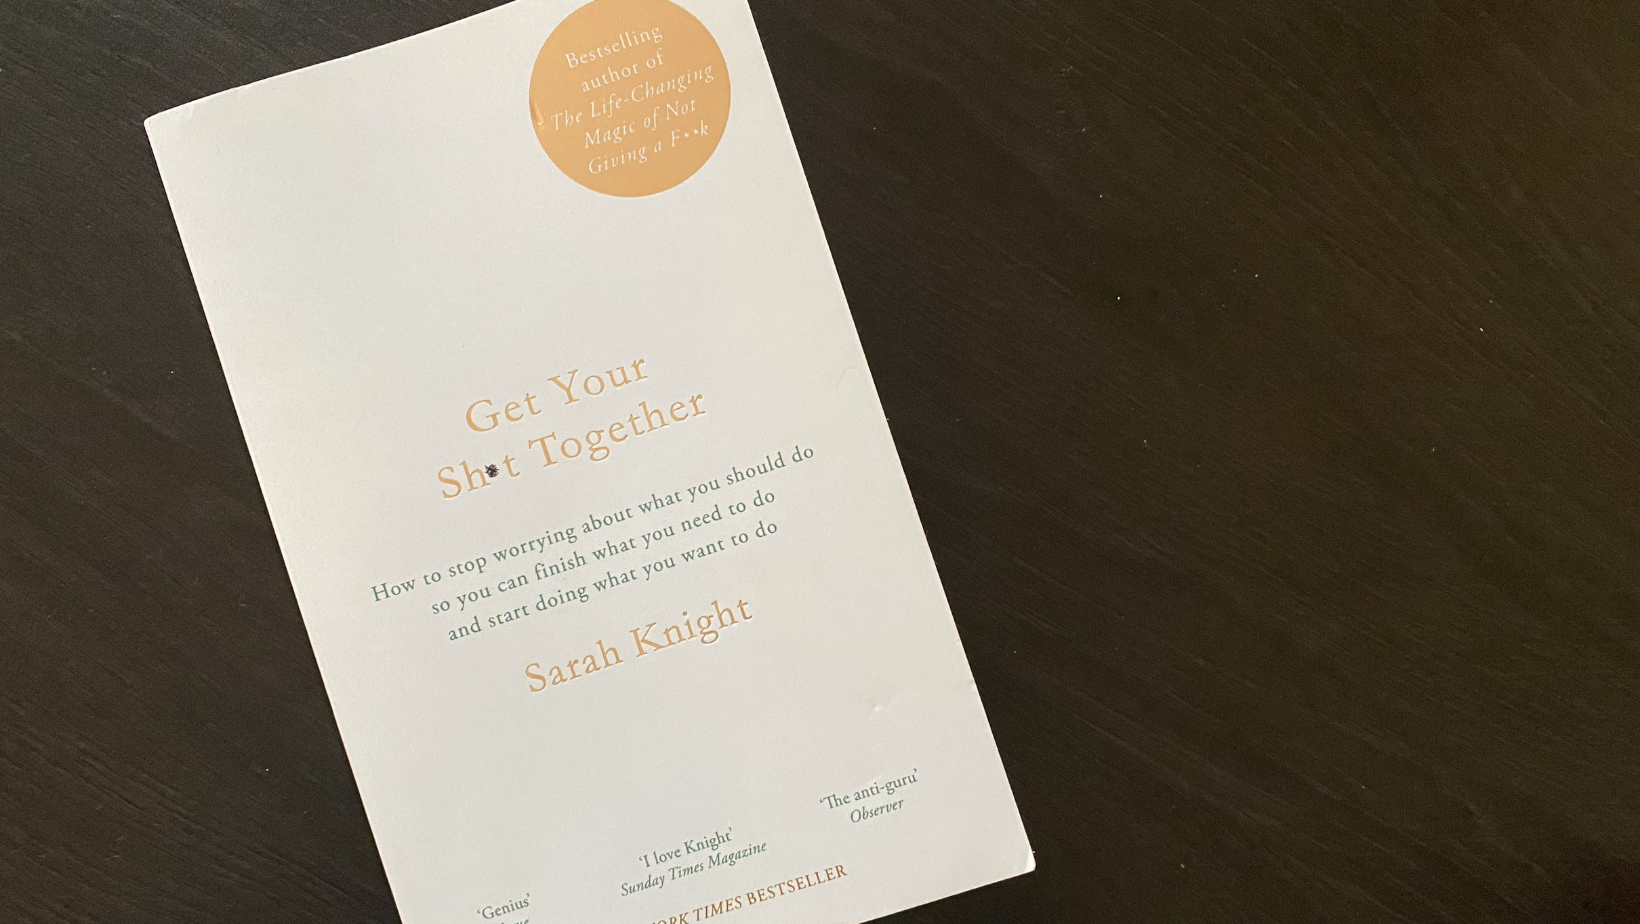 Get your sh*t together by Sarah Knight